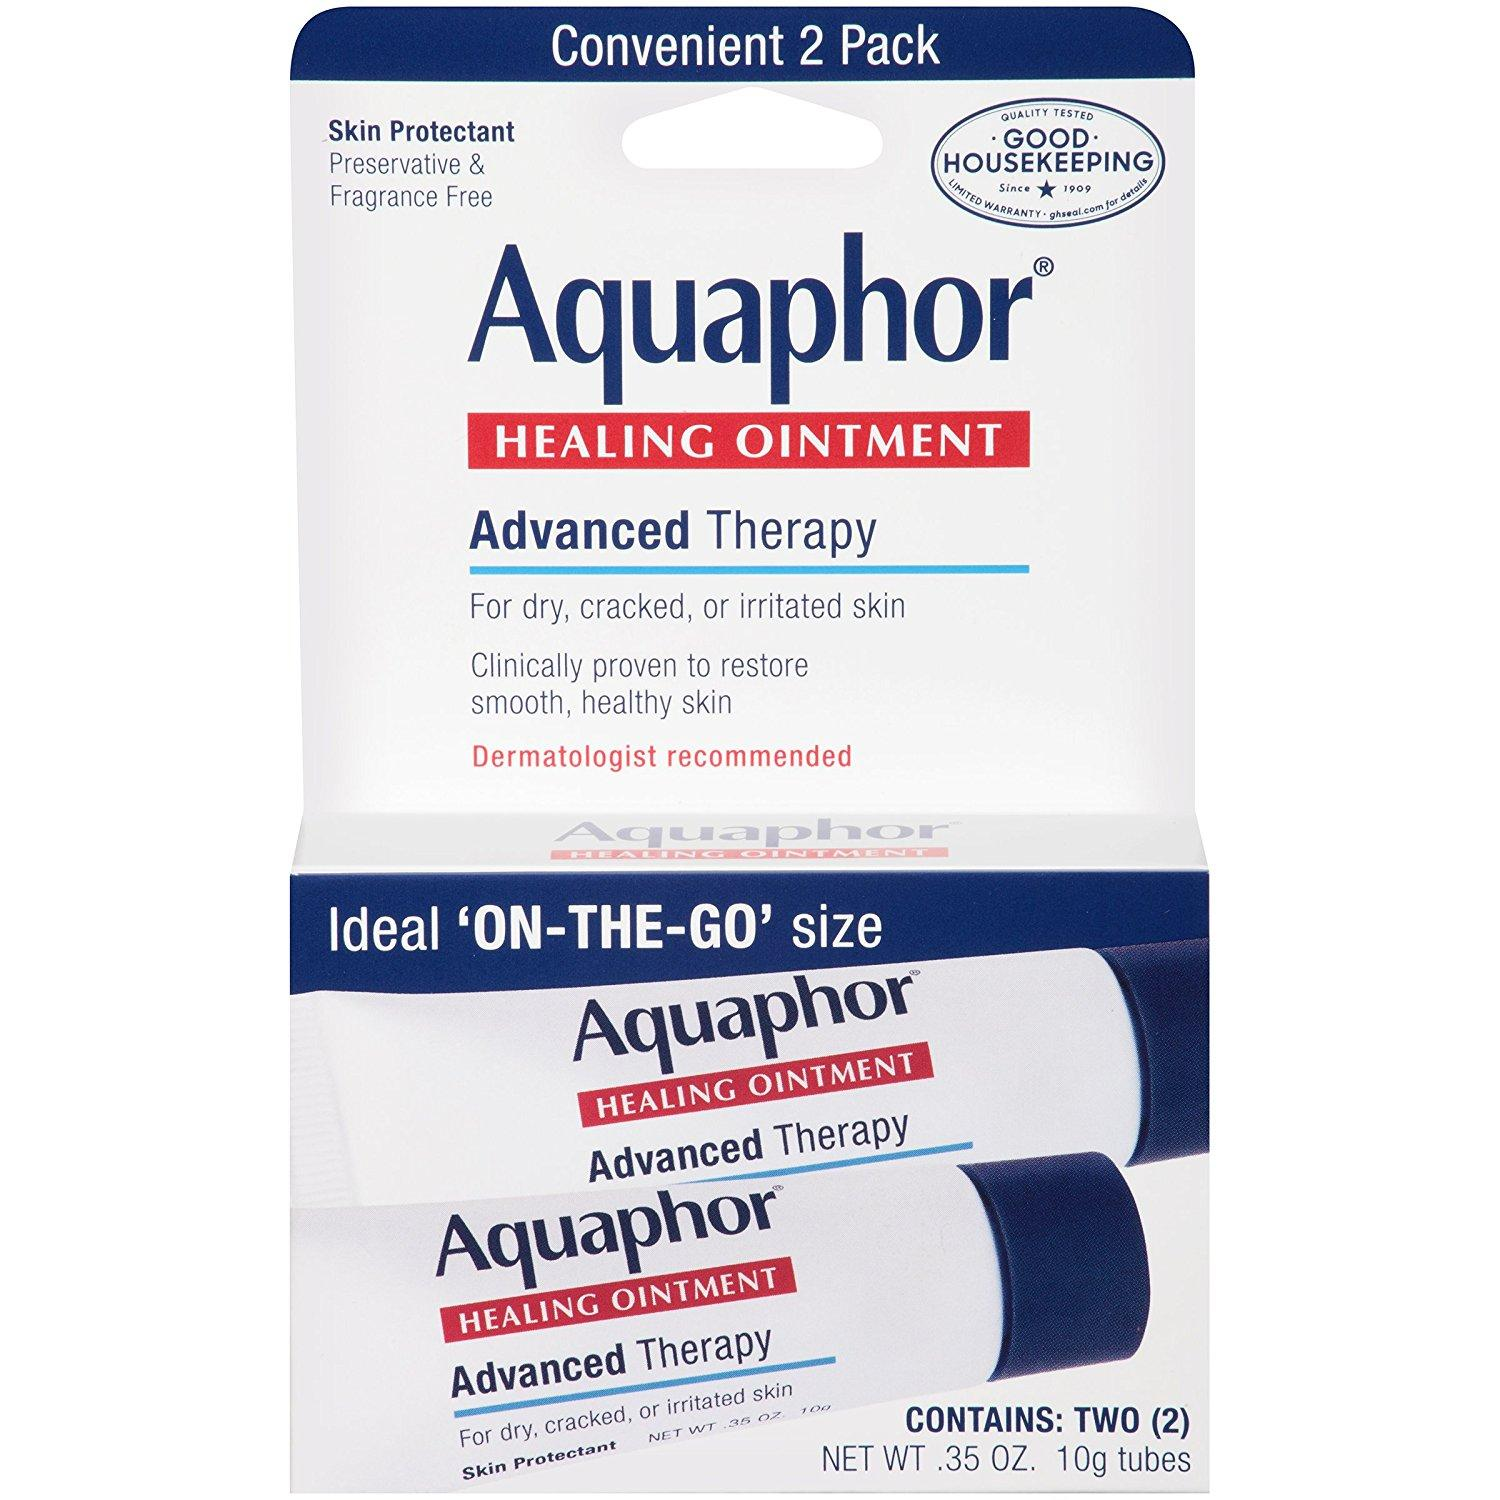 2x Aquaphor Advanced Therapy Healing Ointment Tubes